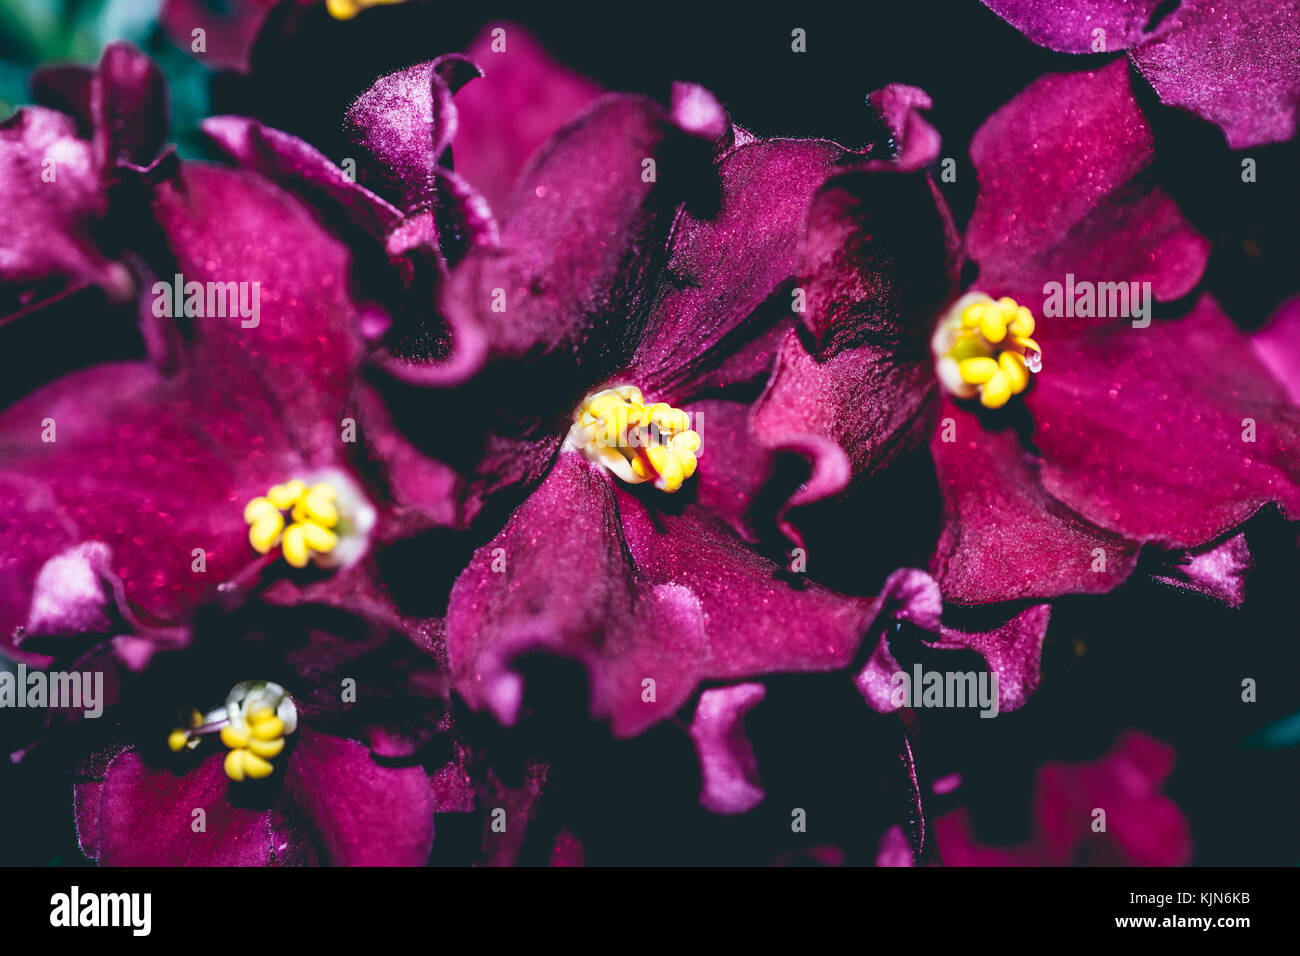 close up of yellow pollen on redish-purple african violets - Stock Image